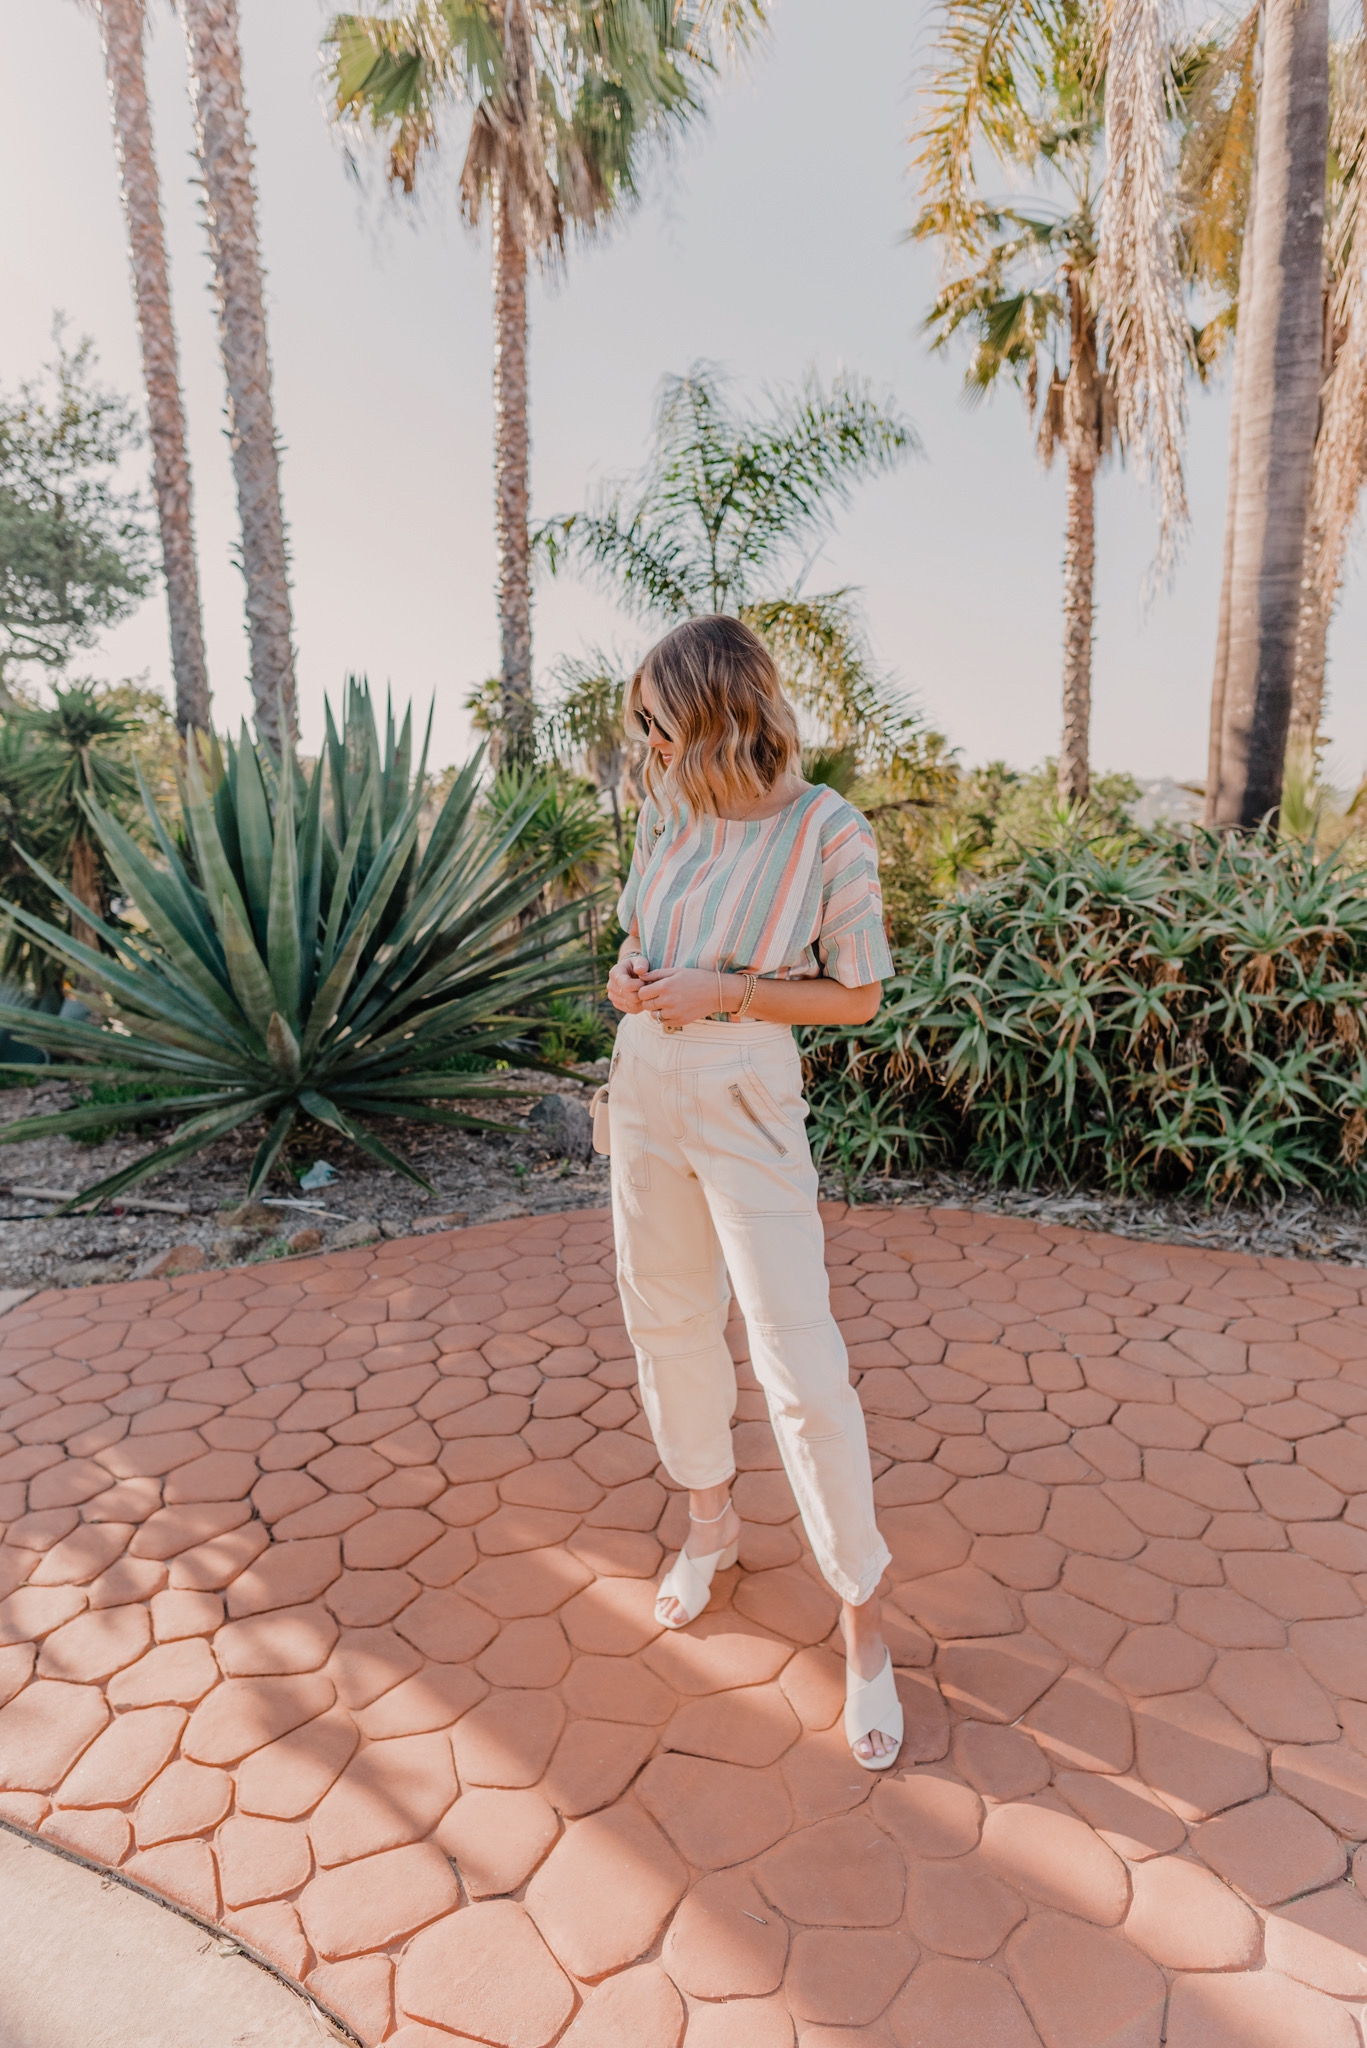 Daily Quarantine Schedule by popular San Diego lifestyle blog, Navy Grace: image of a woman standing outside by some palm trees and wearing a THE ODELLS: EASY PULL OVER TOP, Free People Free People Misty Road Pants, Shashi Tilu Set of 2 Bracelets, and Nordstrom 51mm Aviator Sunglasses RAY-BAN.